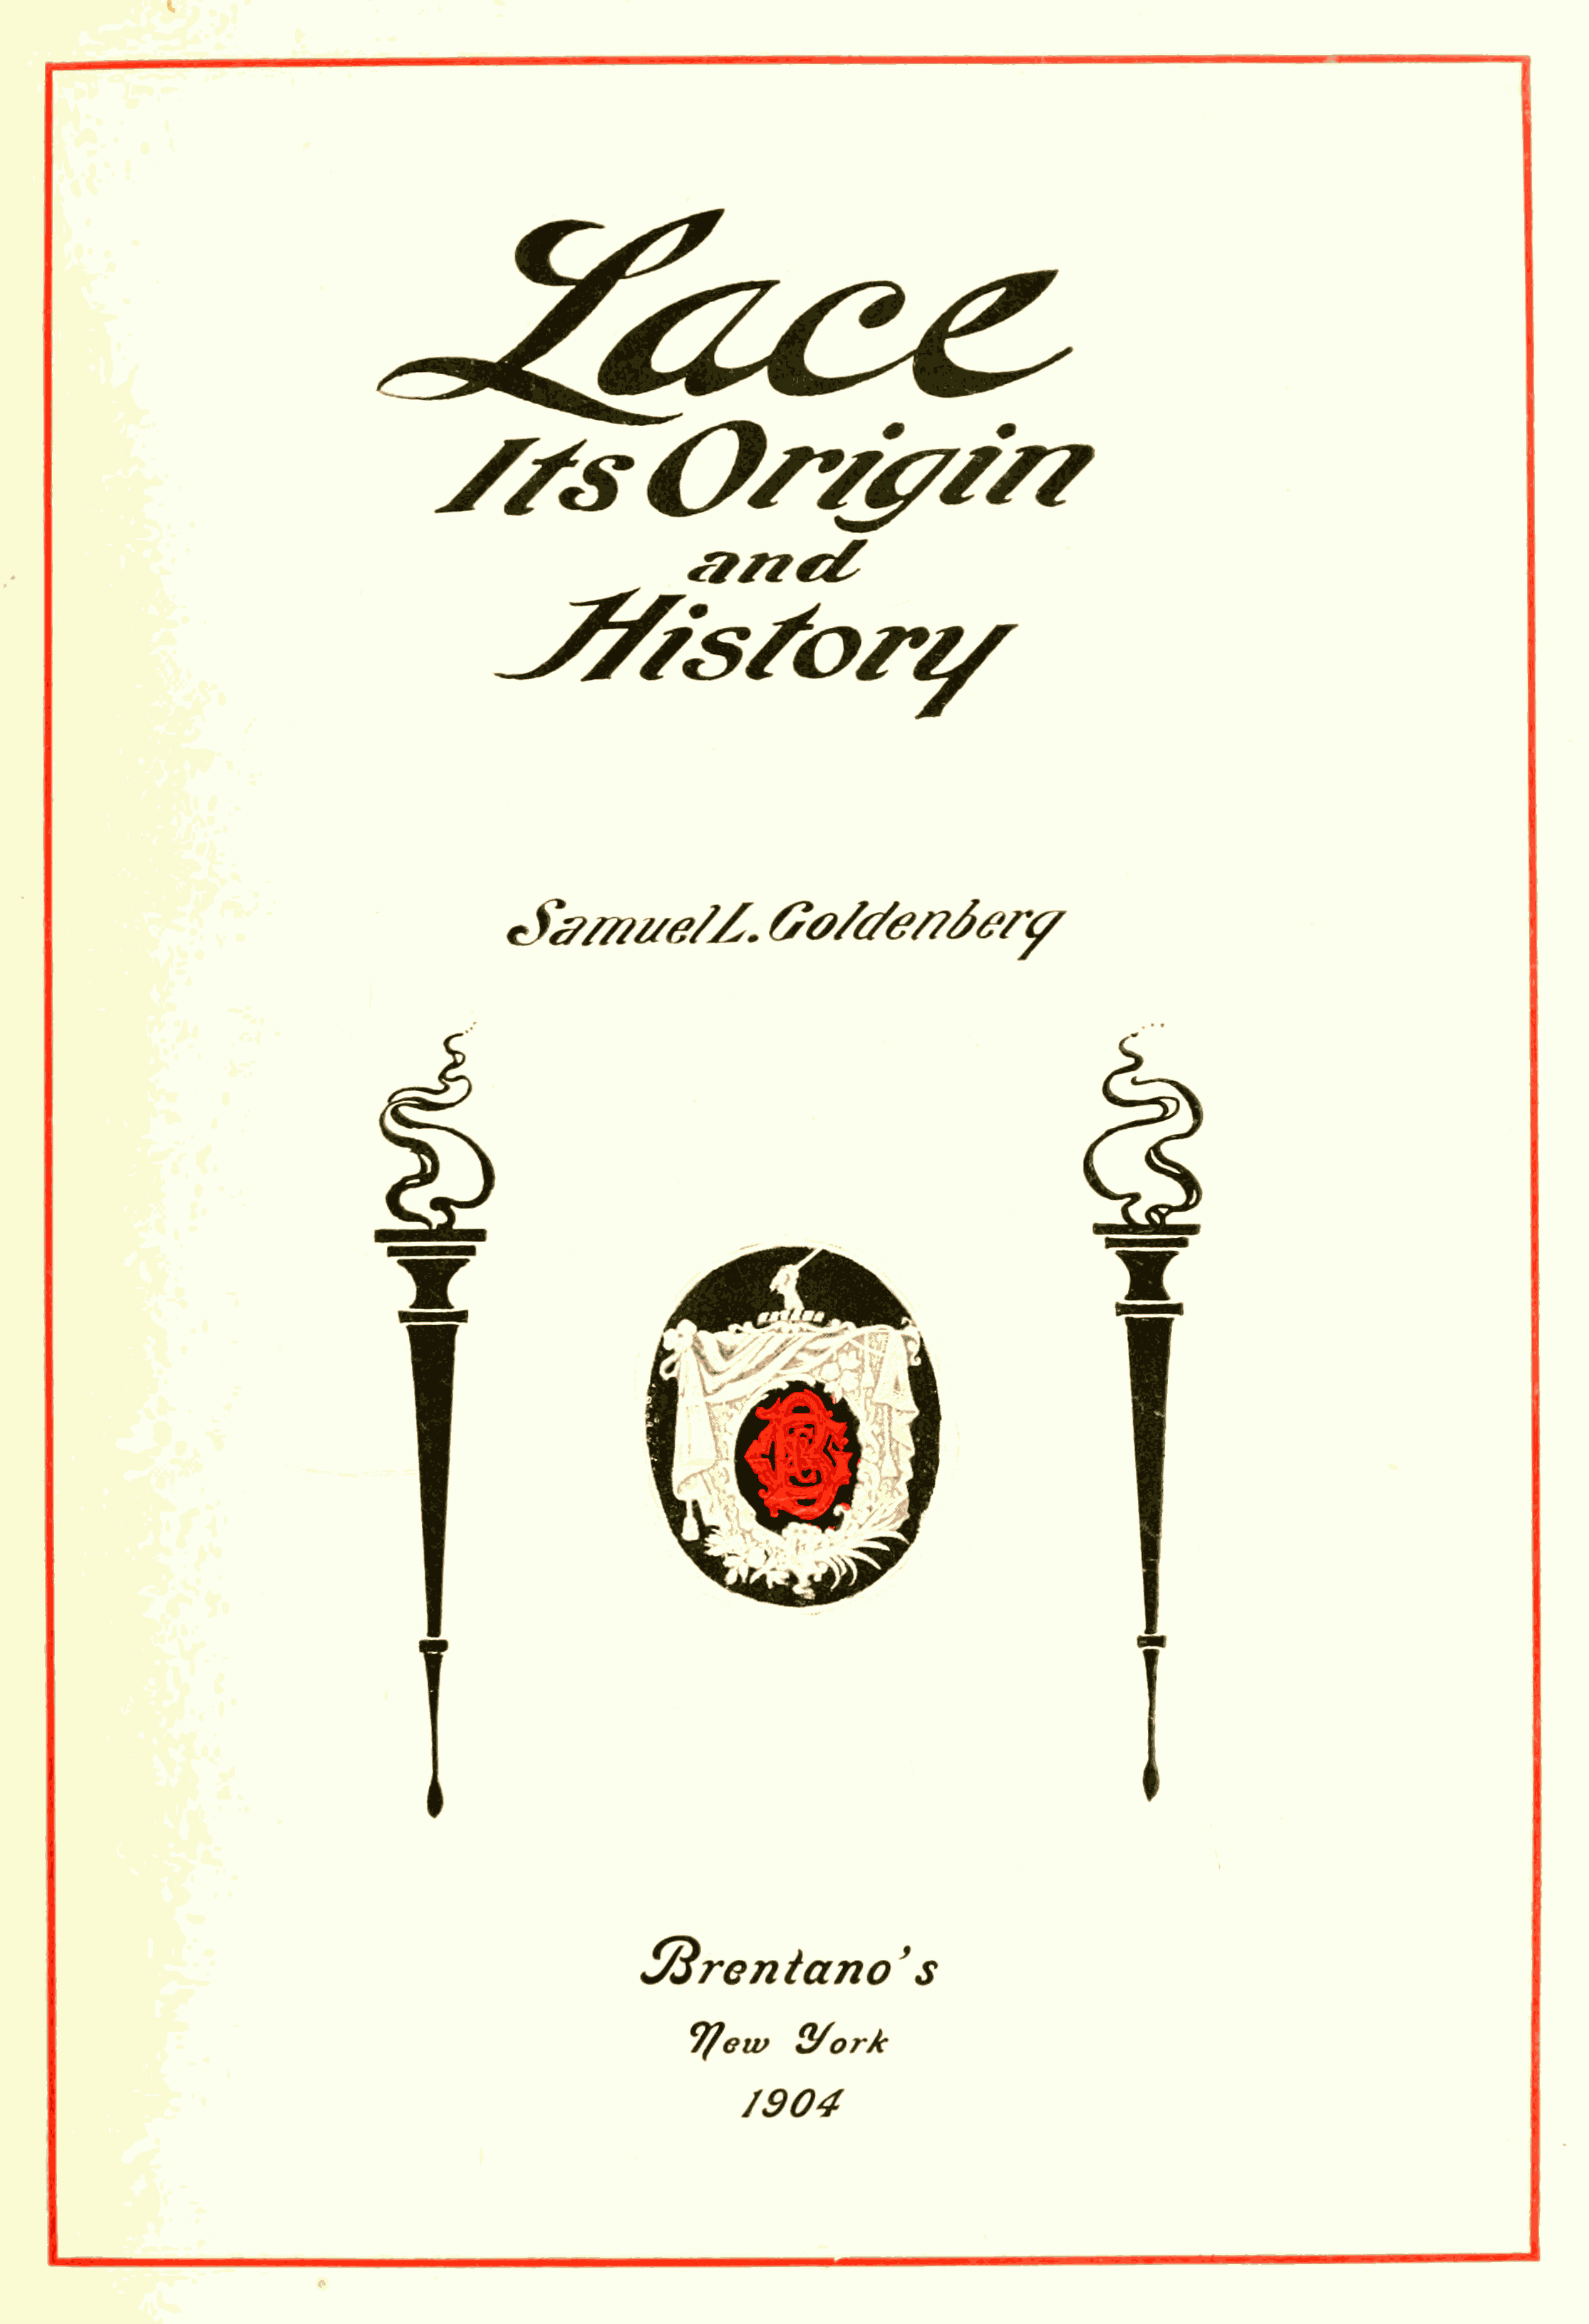 file lace its origin and history title page png file lace its origin and history title page png